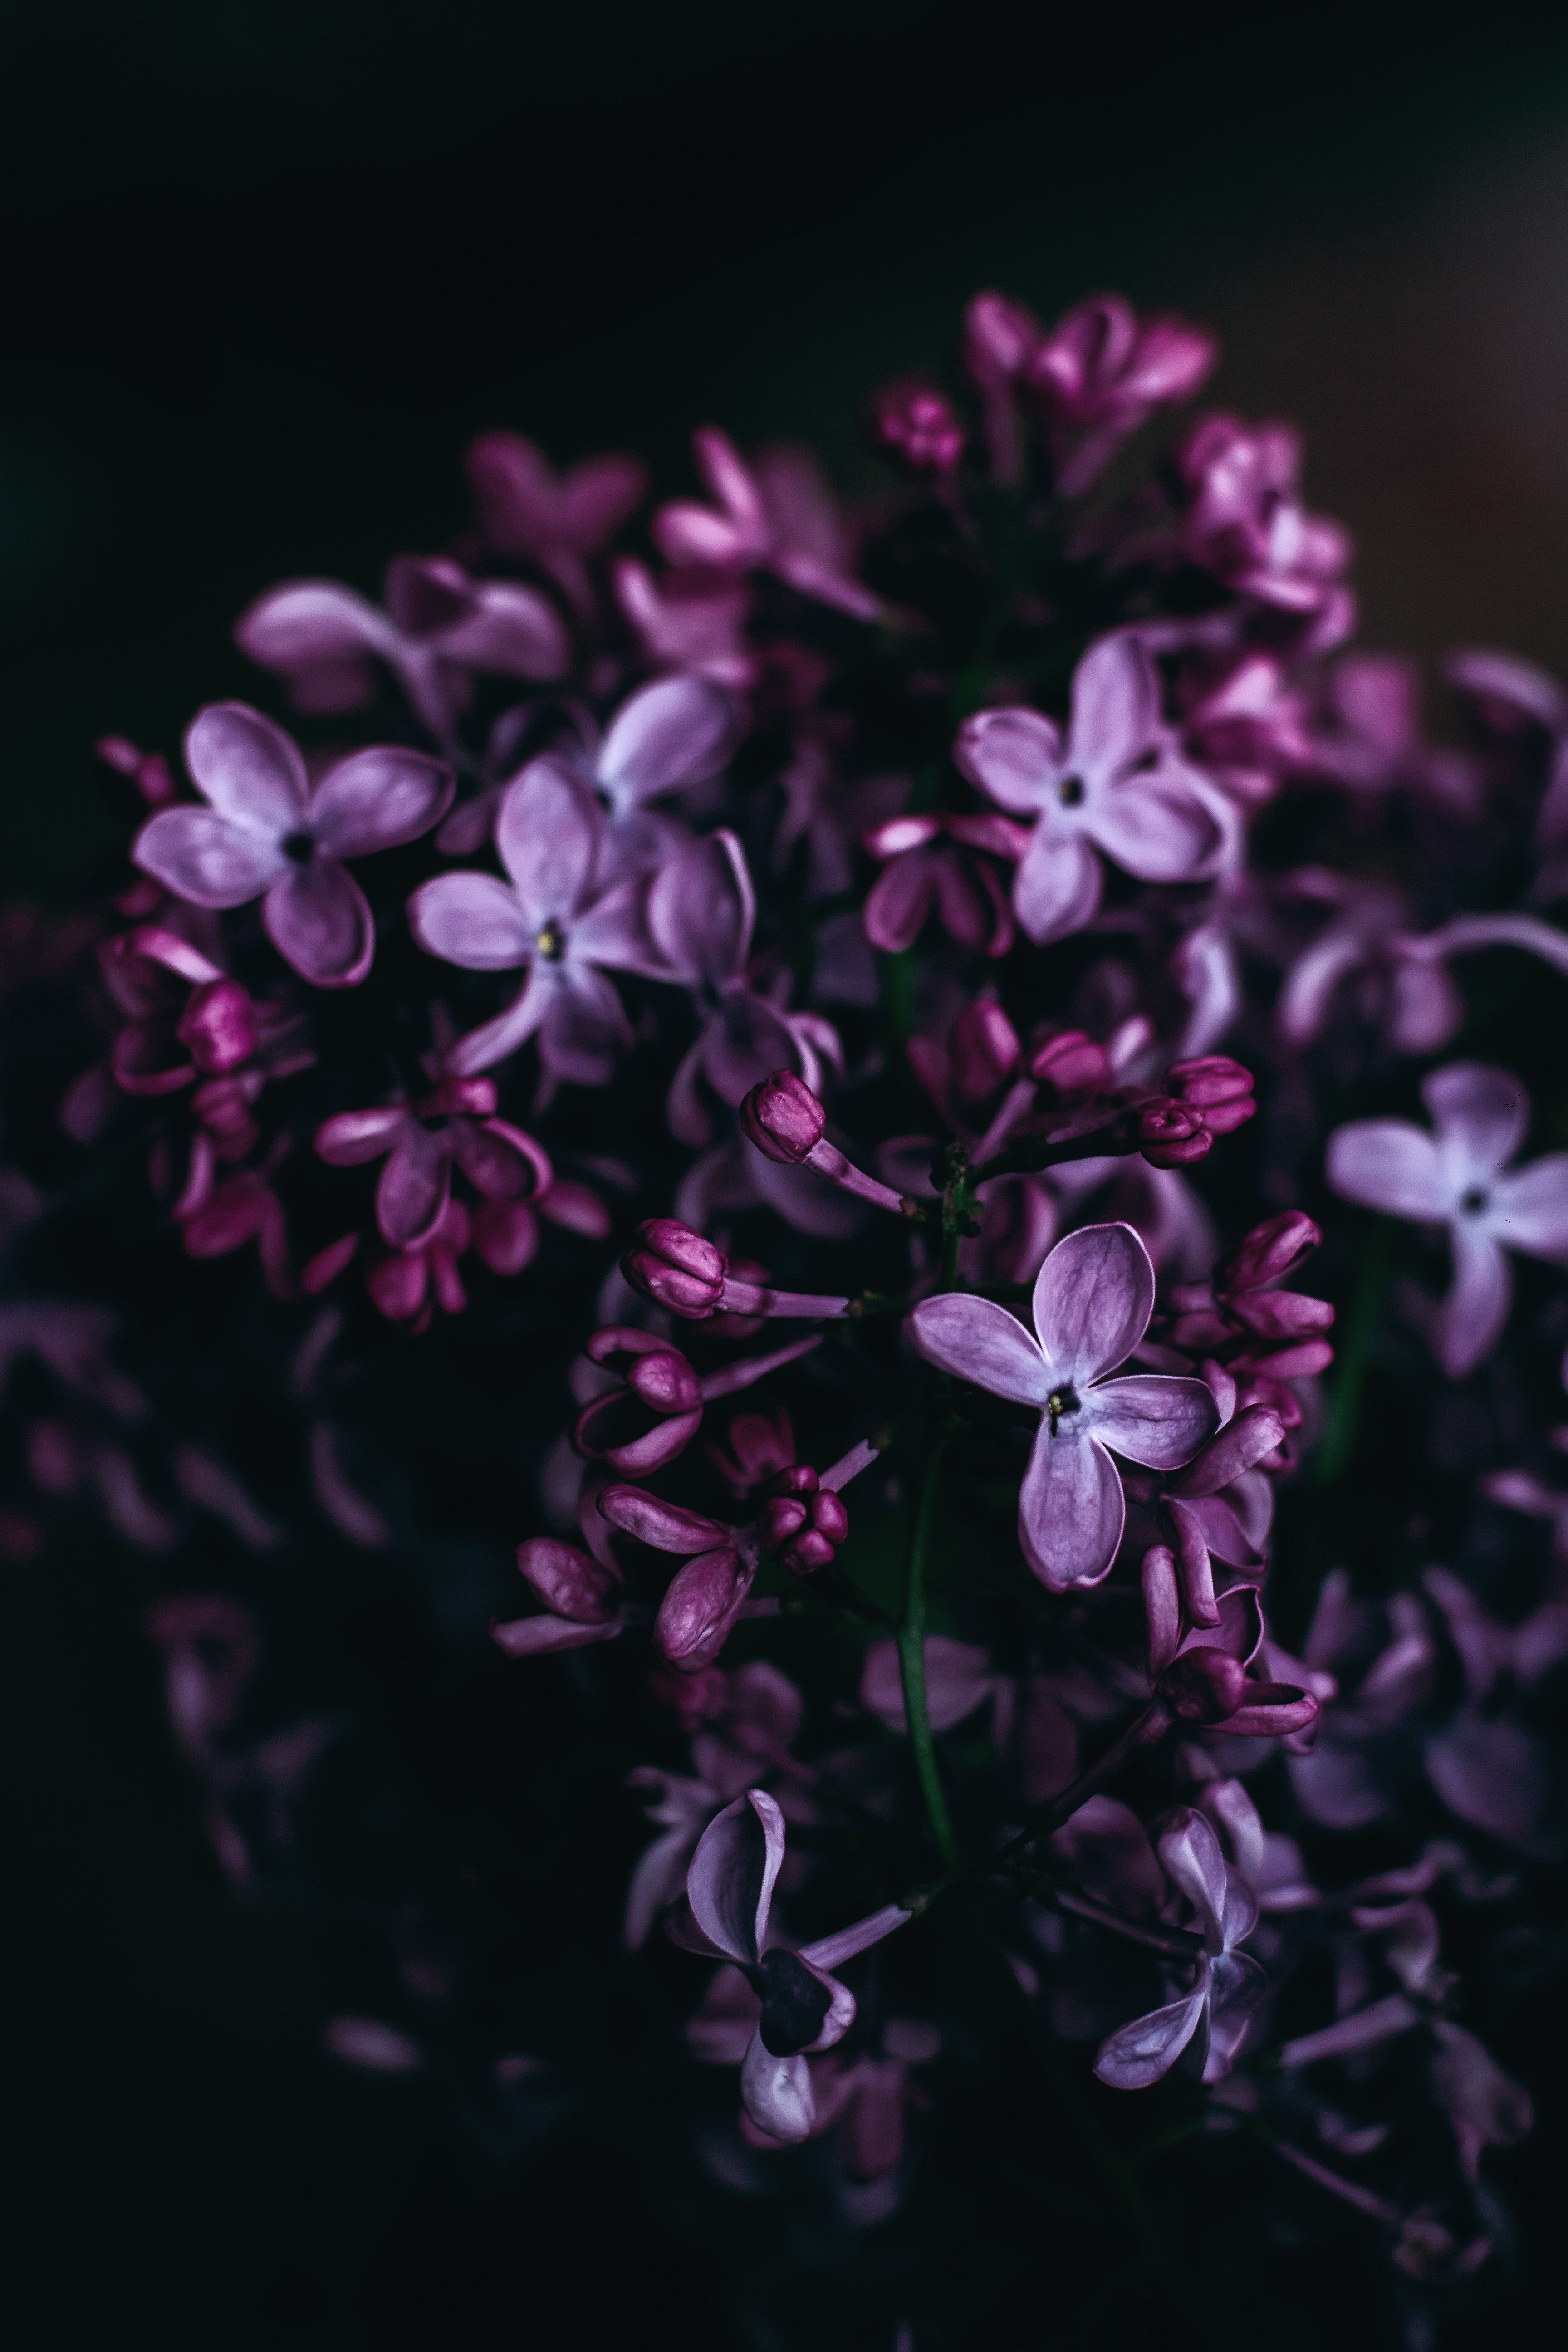 A close-up of purple lilac flowers against a black background